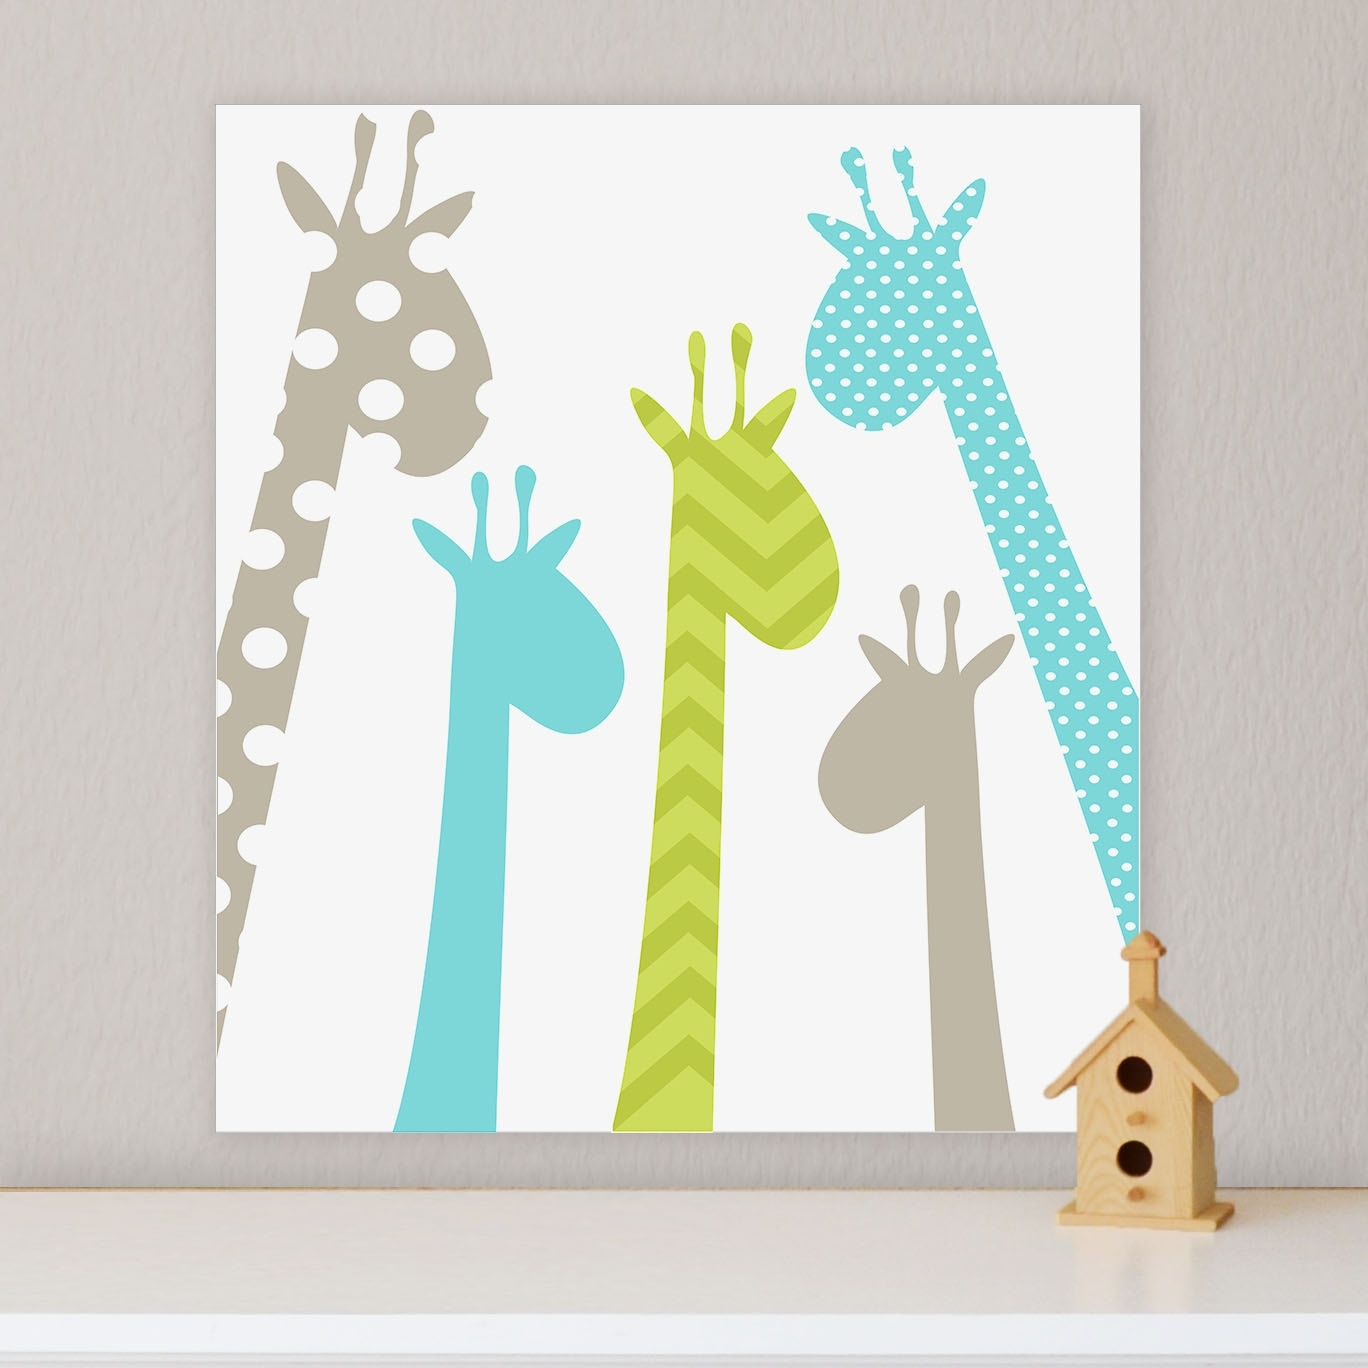 Canvas Wall Art For Kids Rooms – Dronemploy #00c8f2ef646c For Current Baby Room Canvas Wall Art (View 10 of 15)